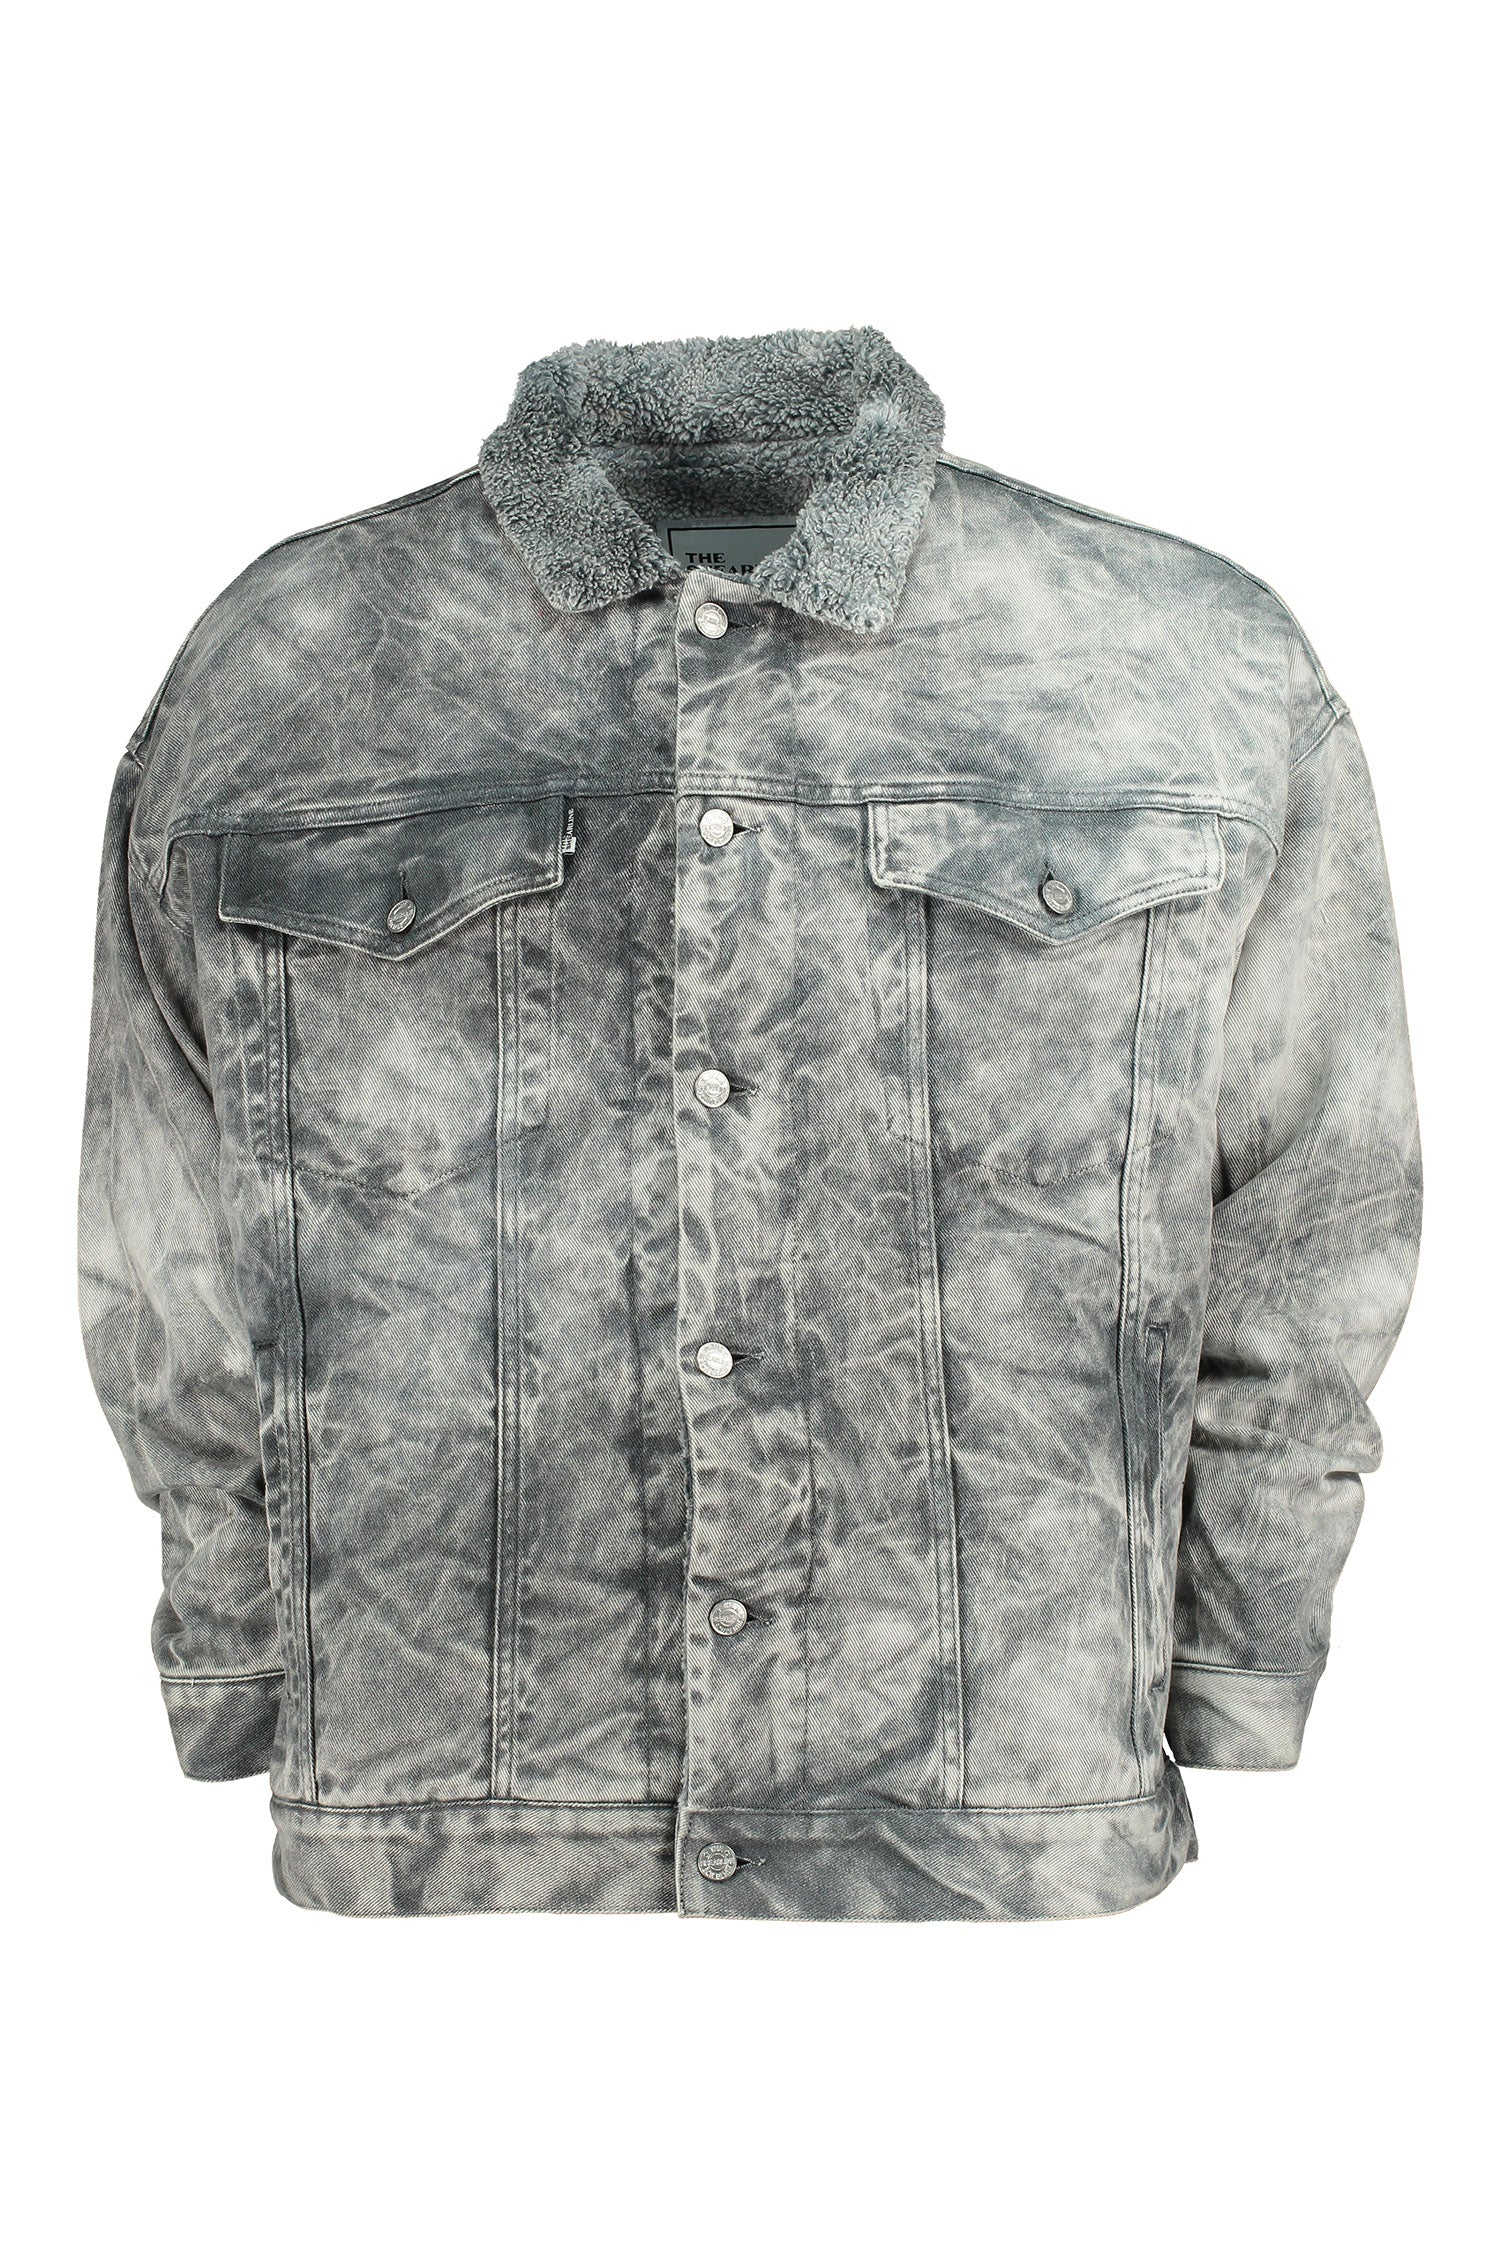 The Shearline jacket Man Acid Wash